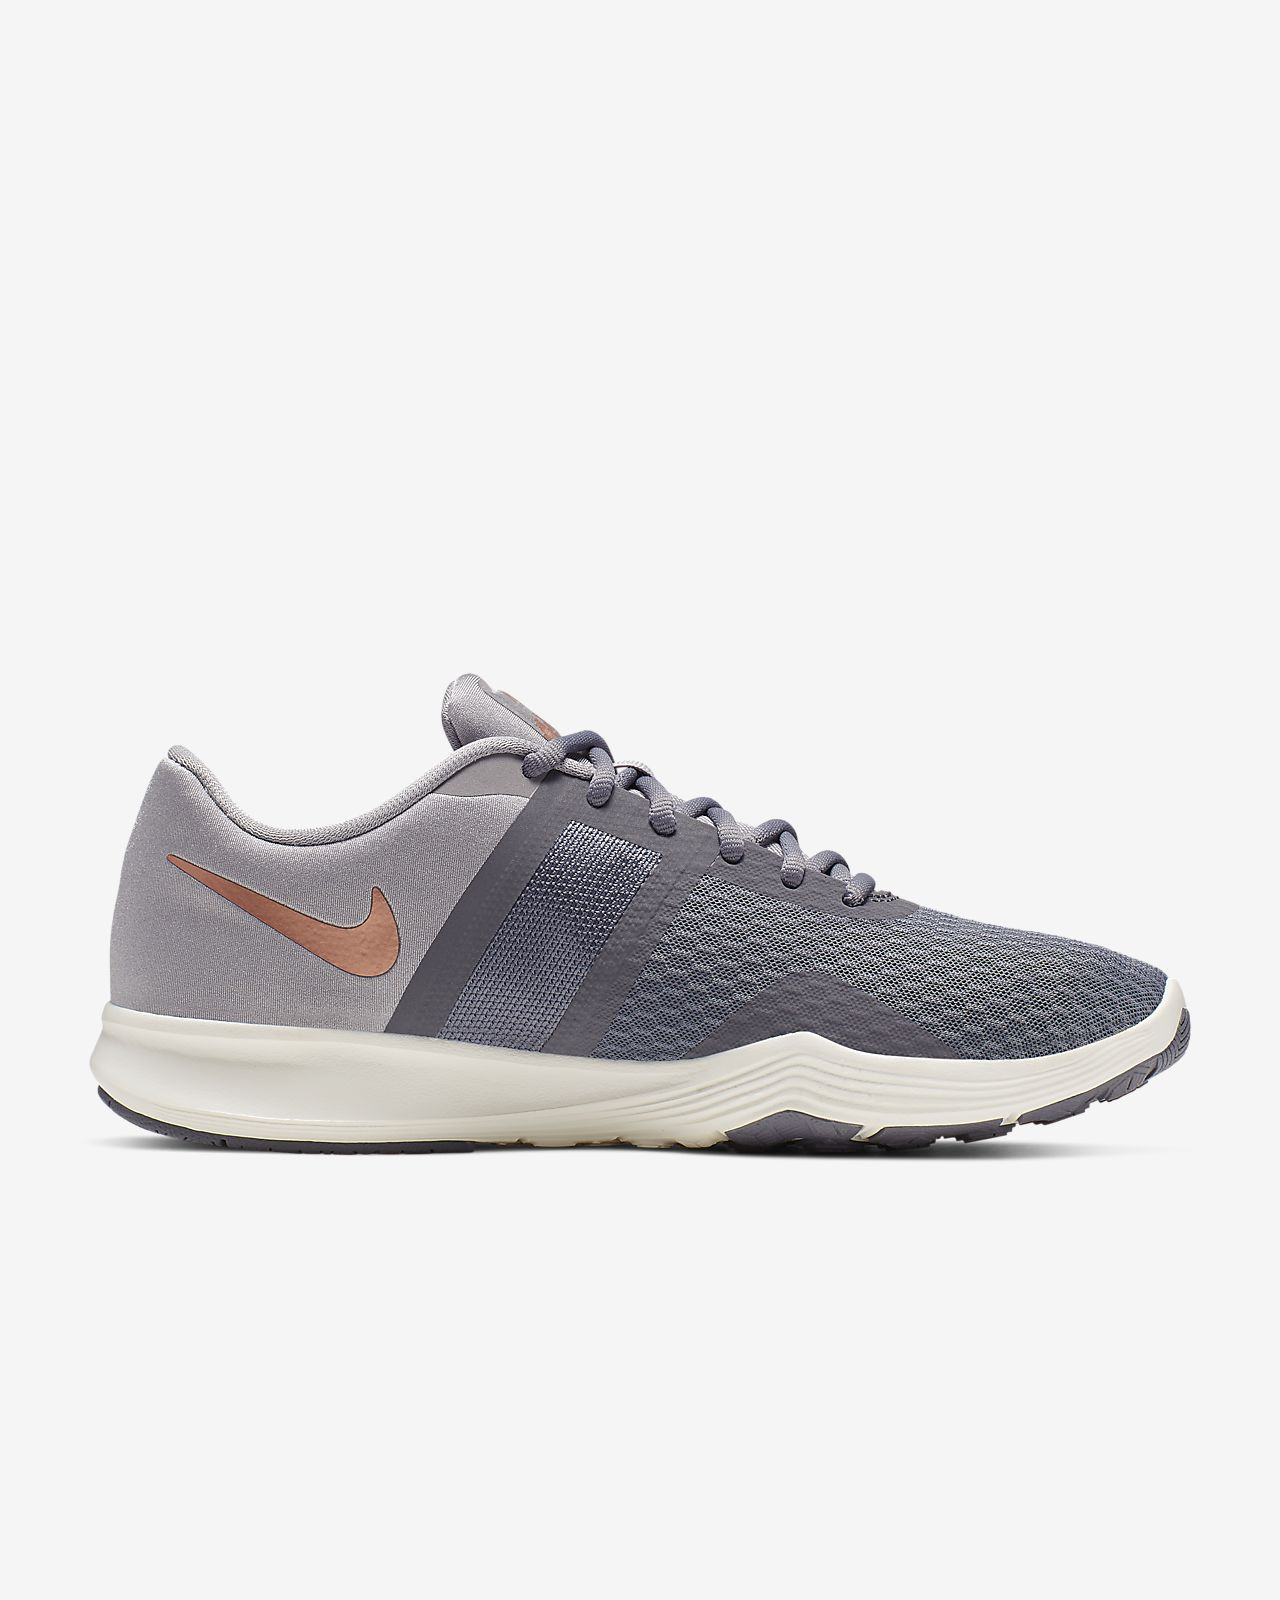 new products d98c0 70085 ... Nike City Trainer 2 Women s Training Shoe